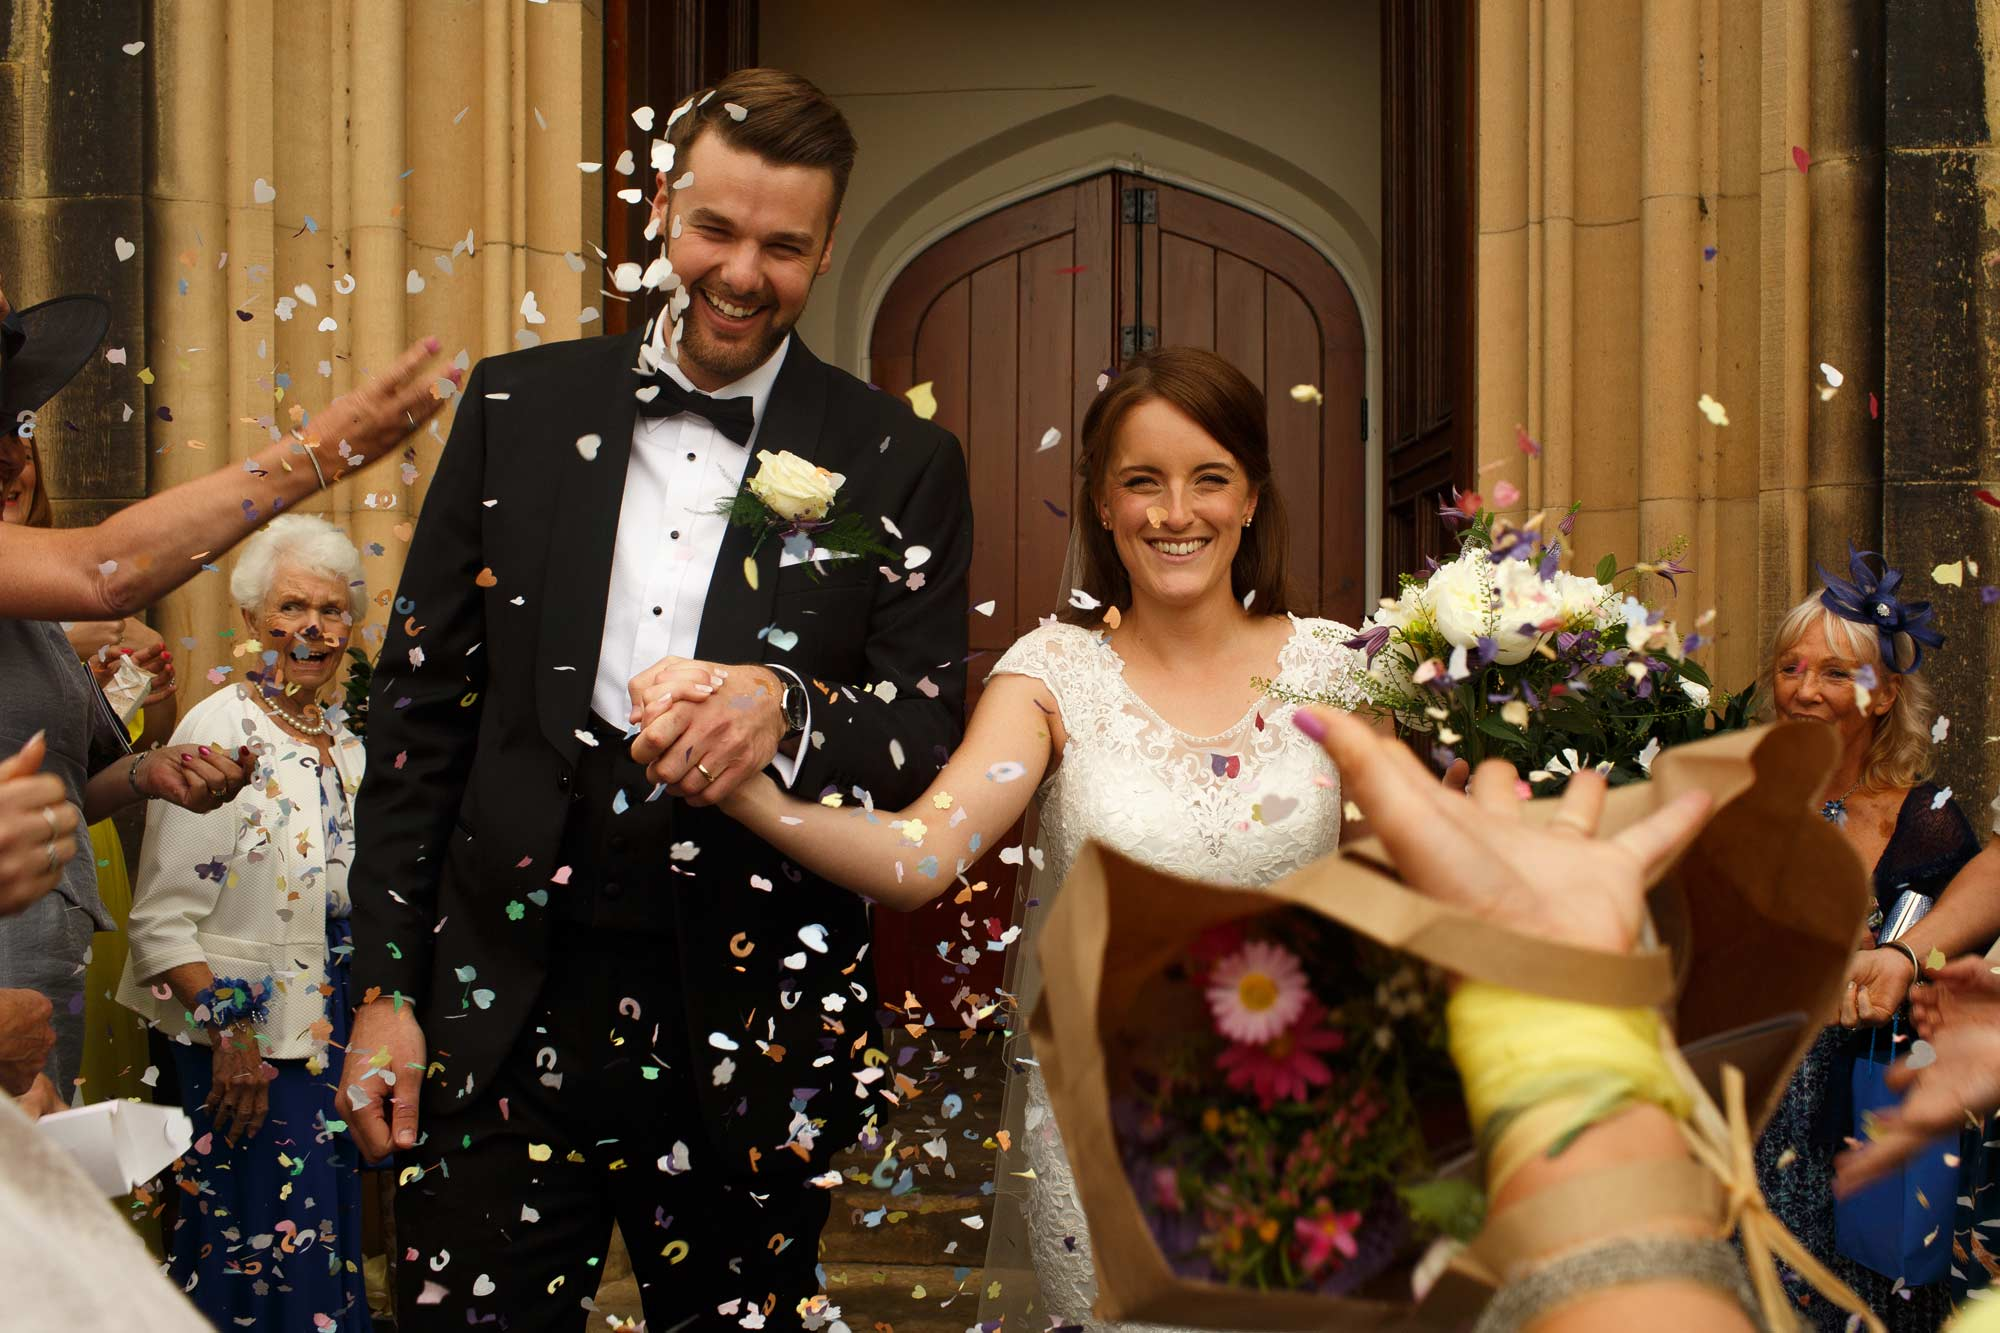 Confetti being throw over bride and groom at stonyhurst college wedding